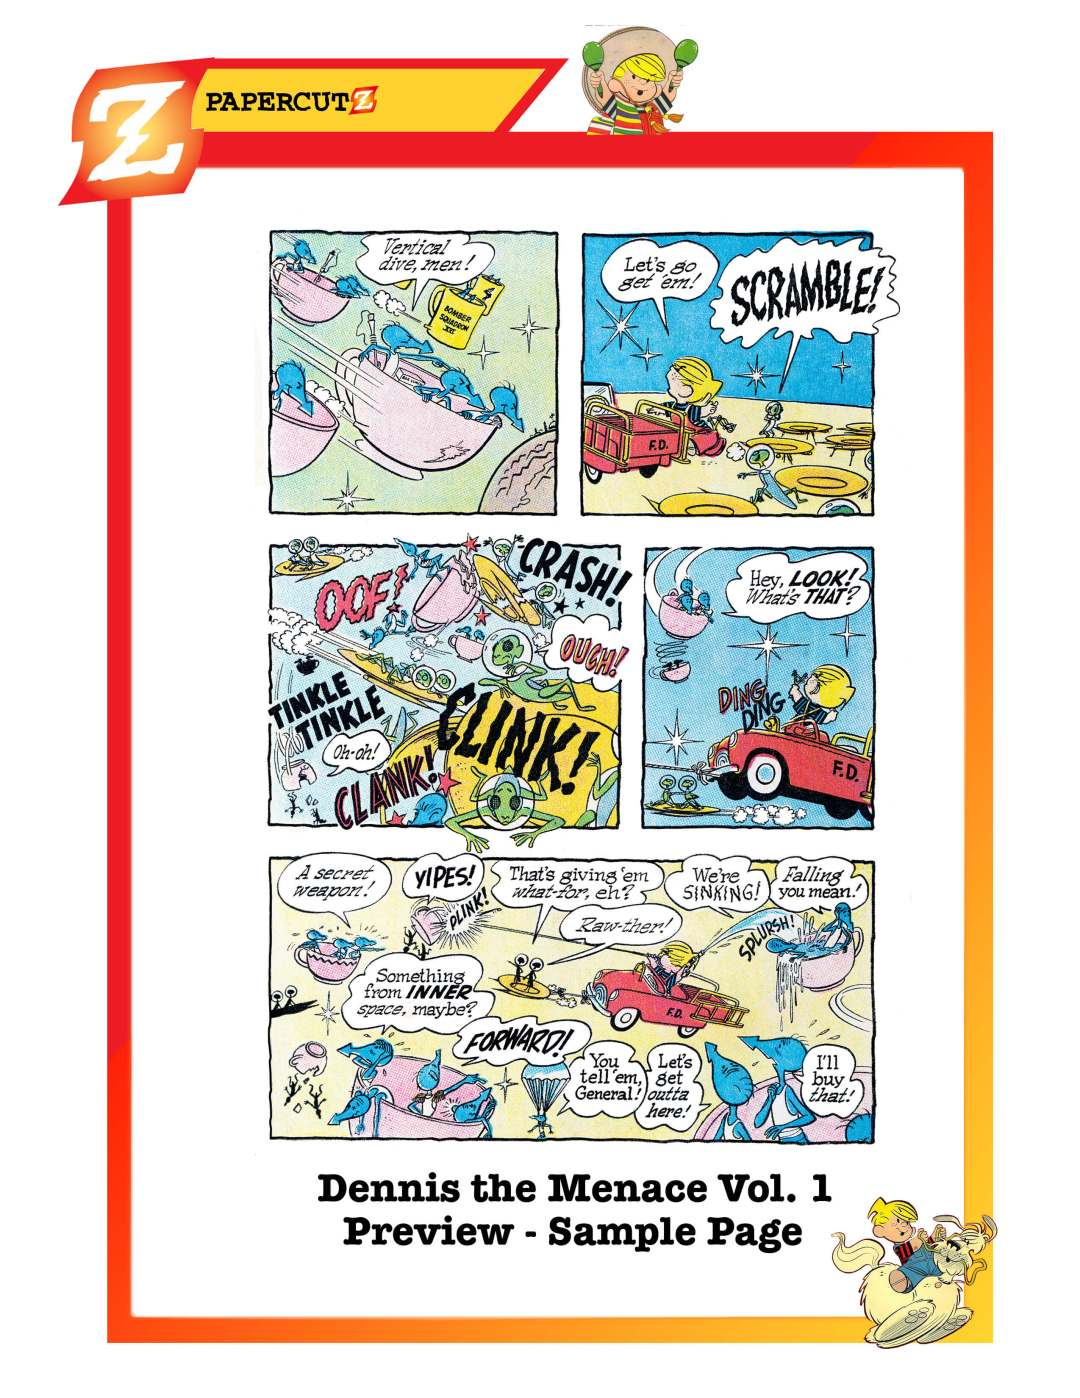 dennis_the_menace_vol1_sample_page2